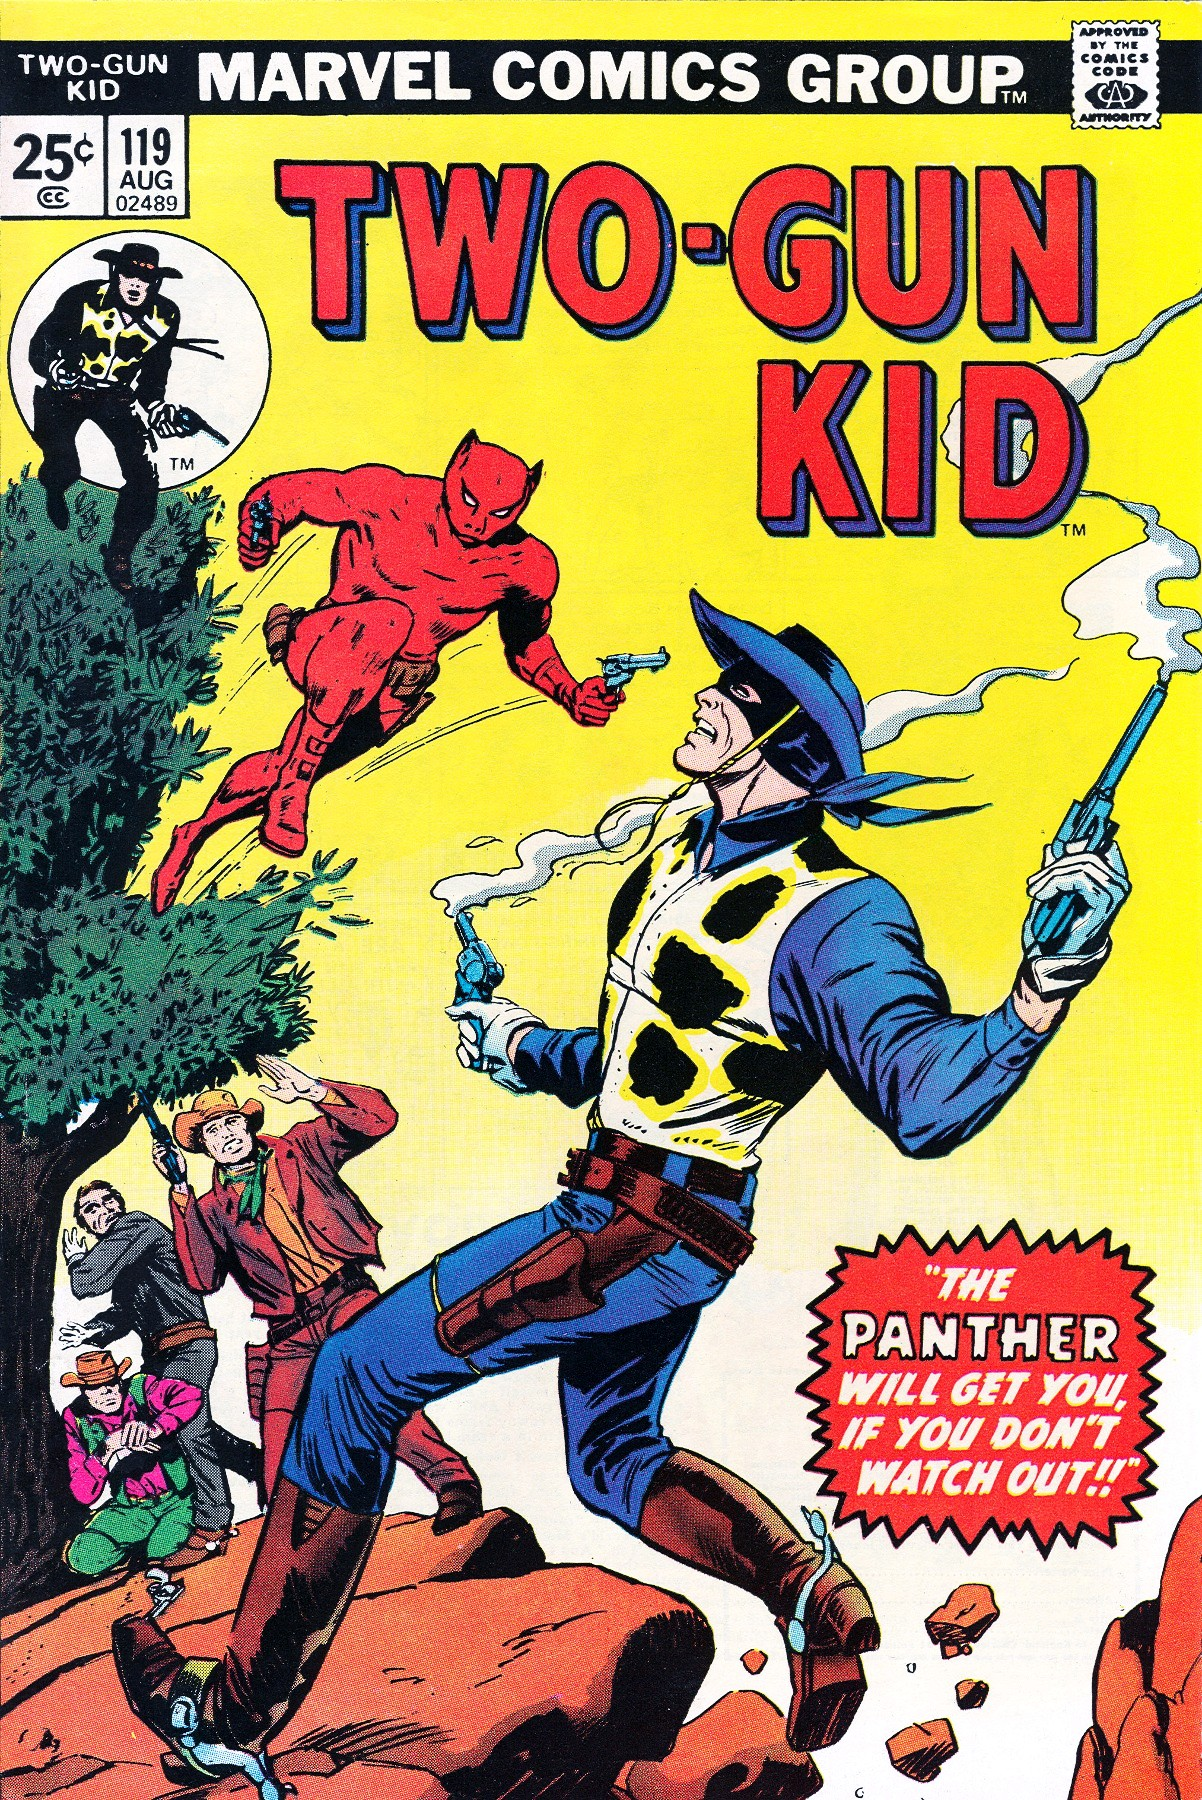 Read online Two-Gun Kid comic -  Issue #119 - 1